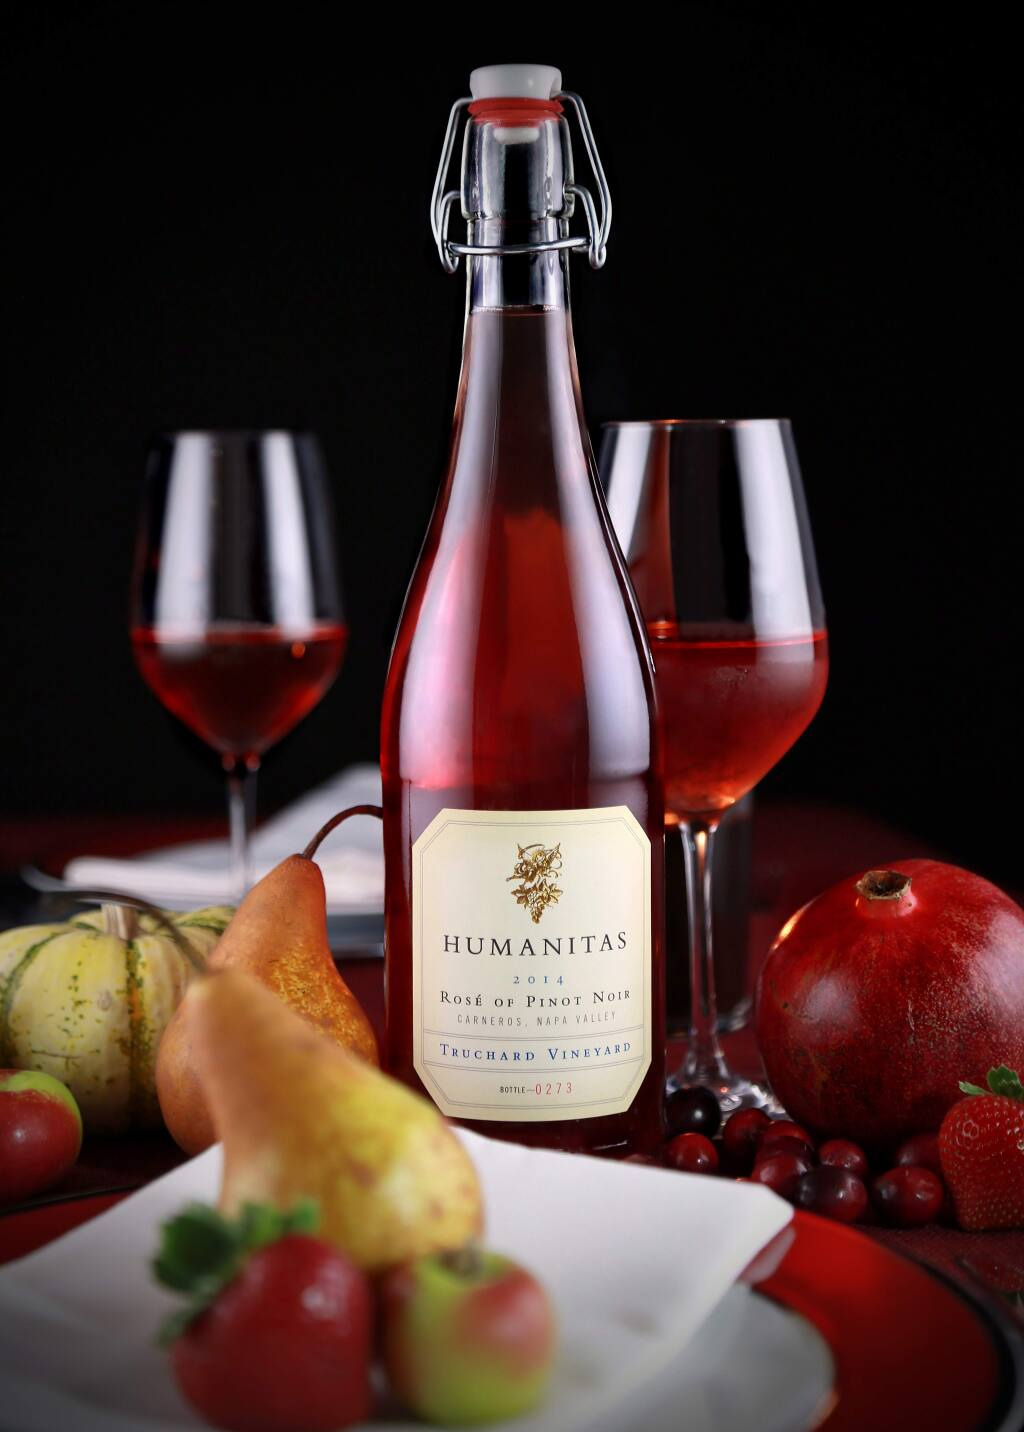 Humanitas Wines of Napa Valley is releasing a rose of pinot noir wine bottled with a swing-top cap. (Will Bucquoy)